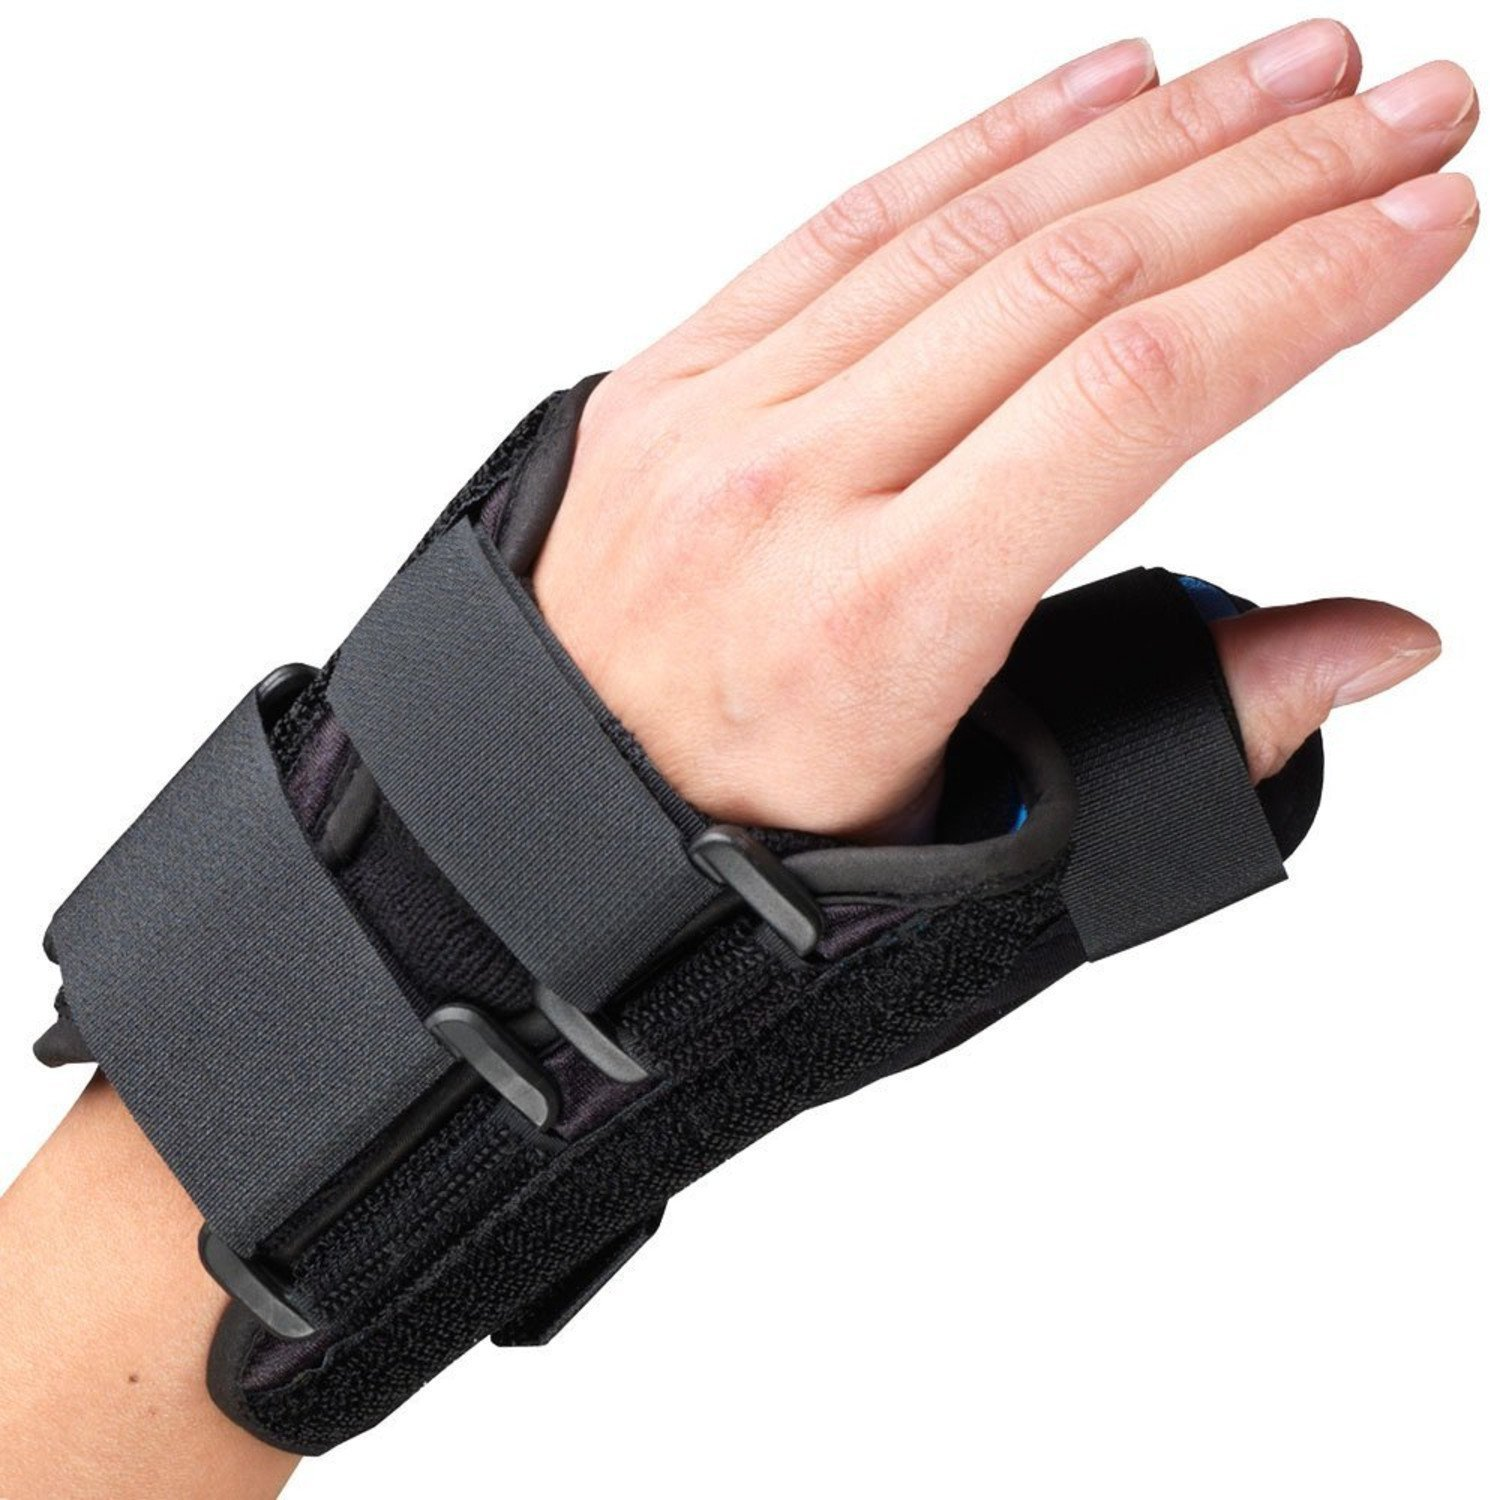 High Quality Wrist-Thumb Splint, 6-Inch Petite or Youth Size, Lightweight Breathable, Small (Left Hand) B07C2HZ4PB